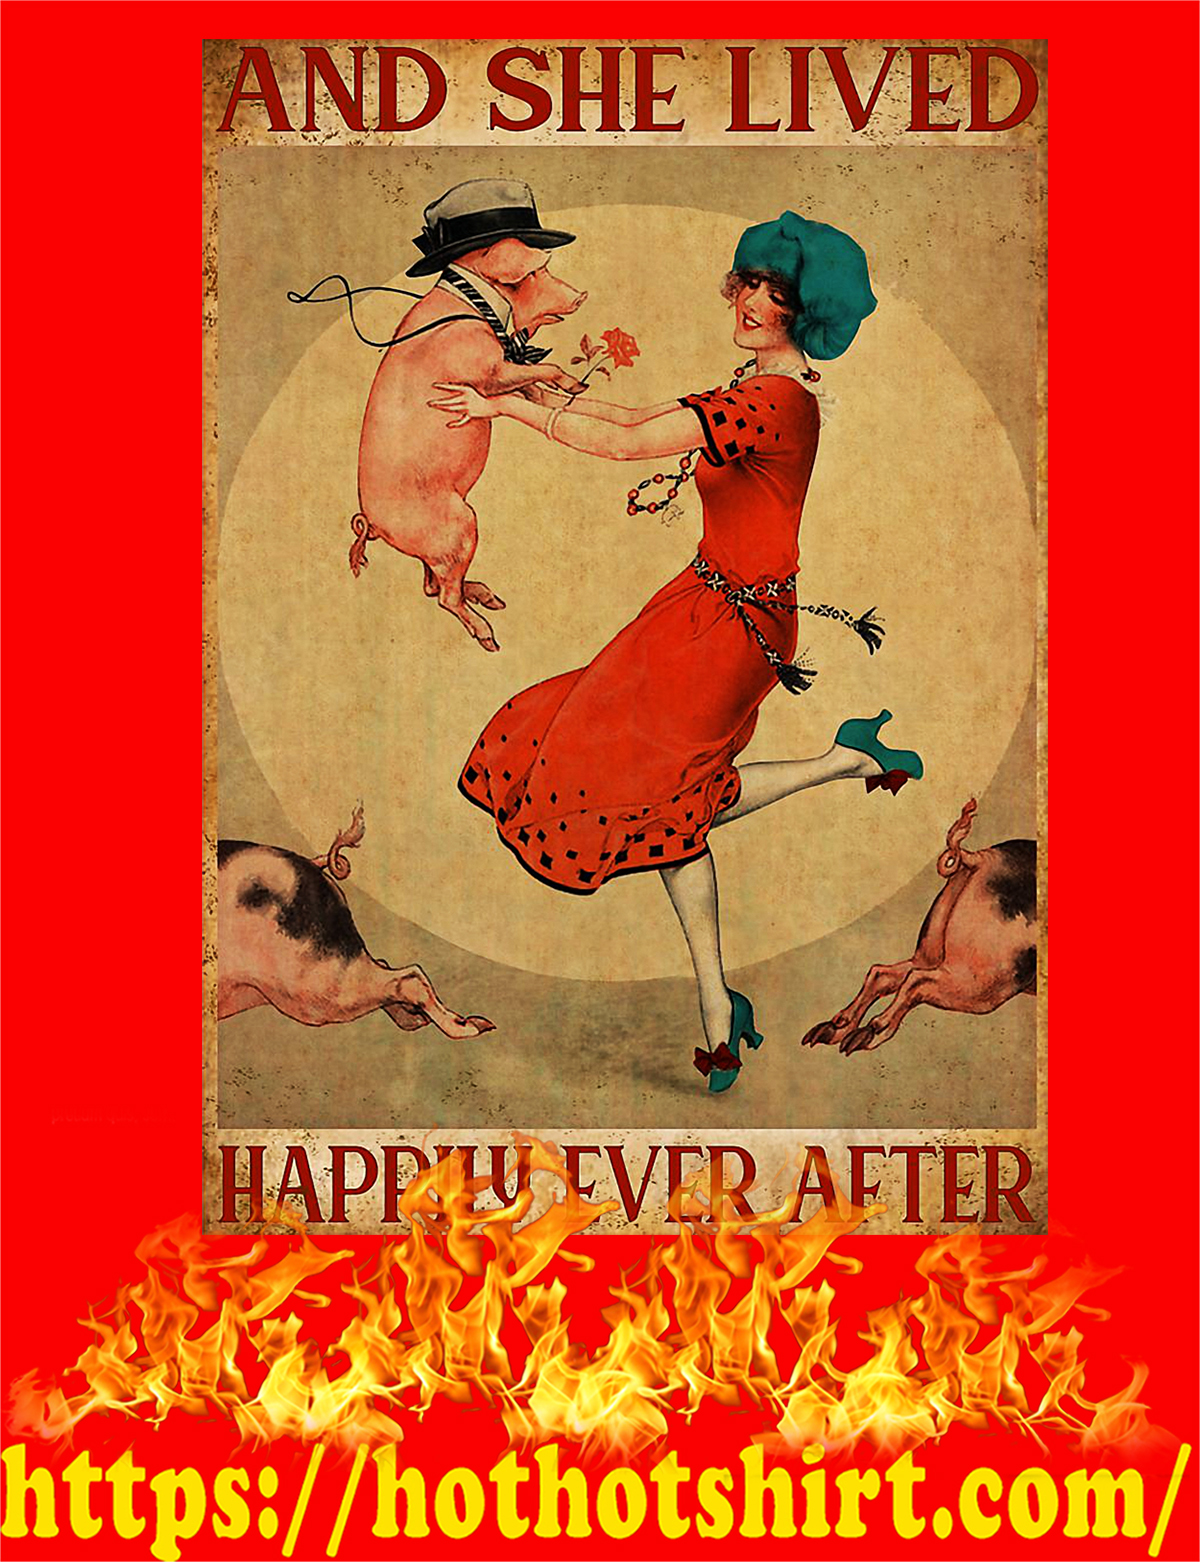 Pig And she lived happily ever after poster - A4